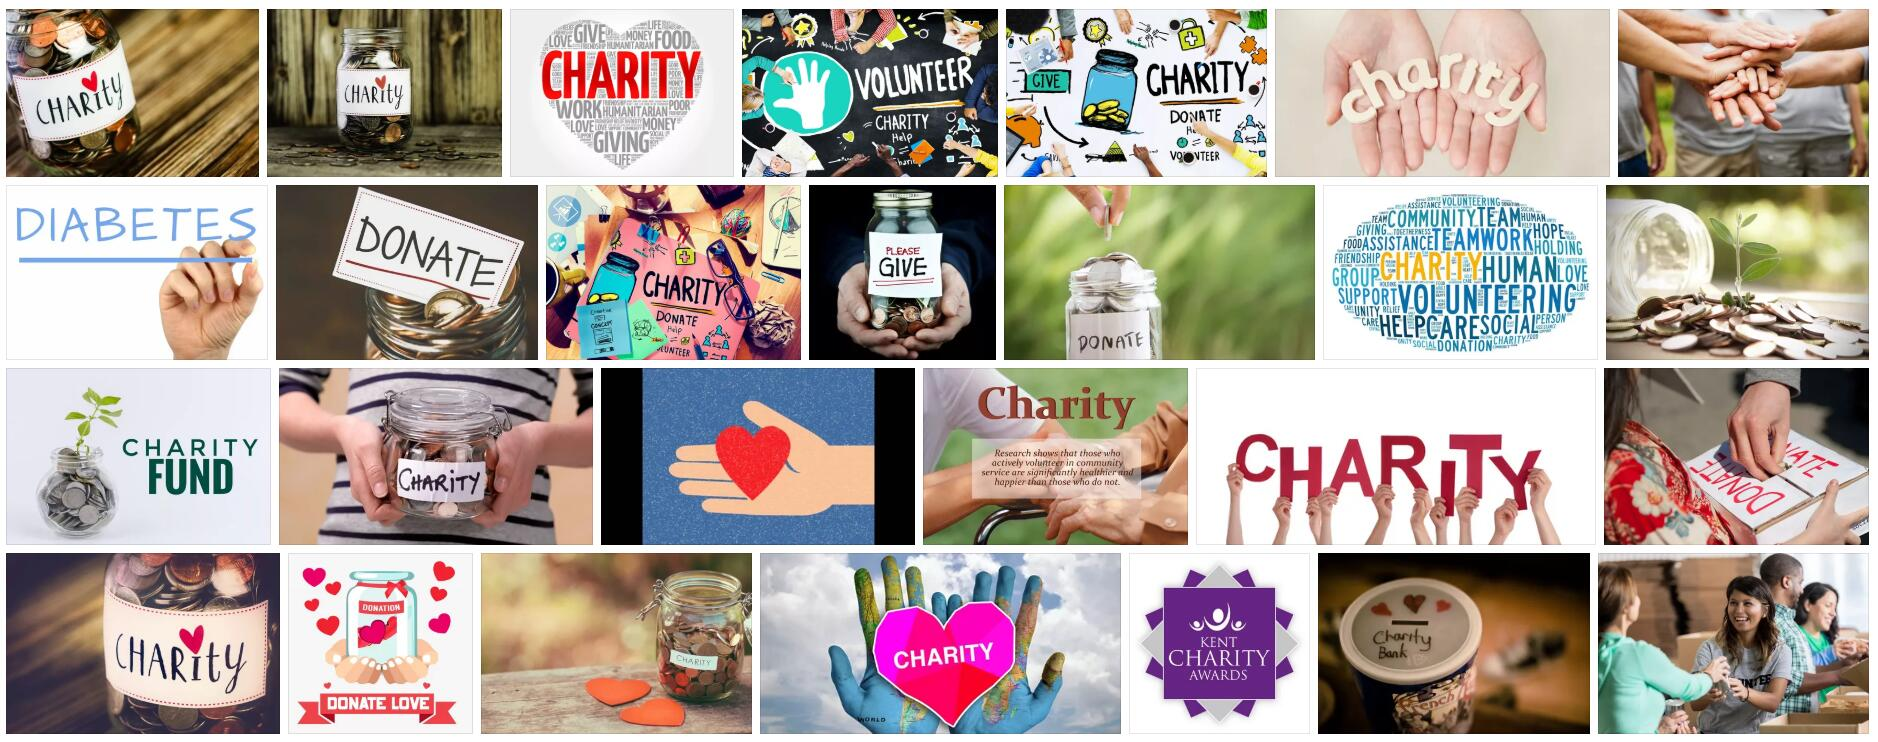 What is Charity